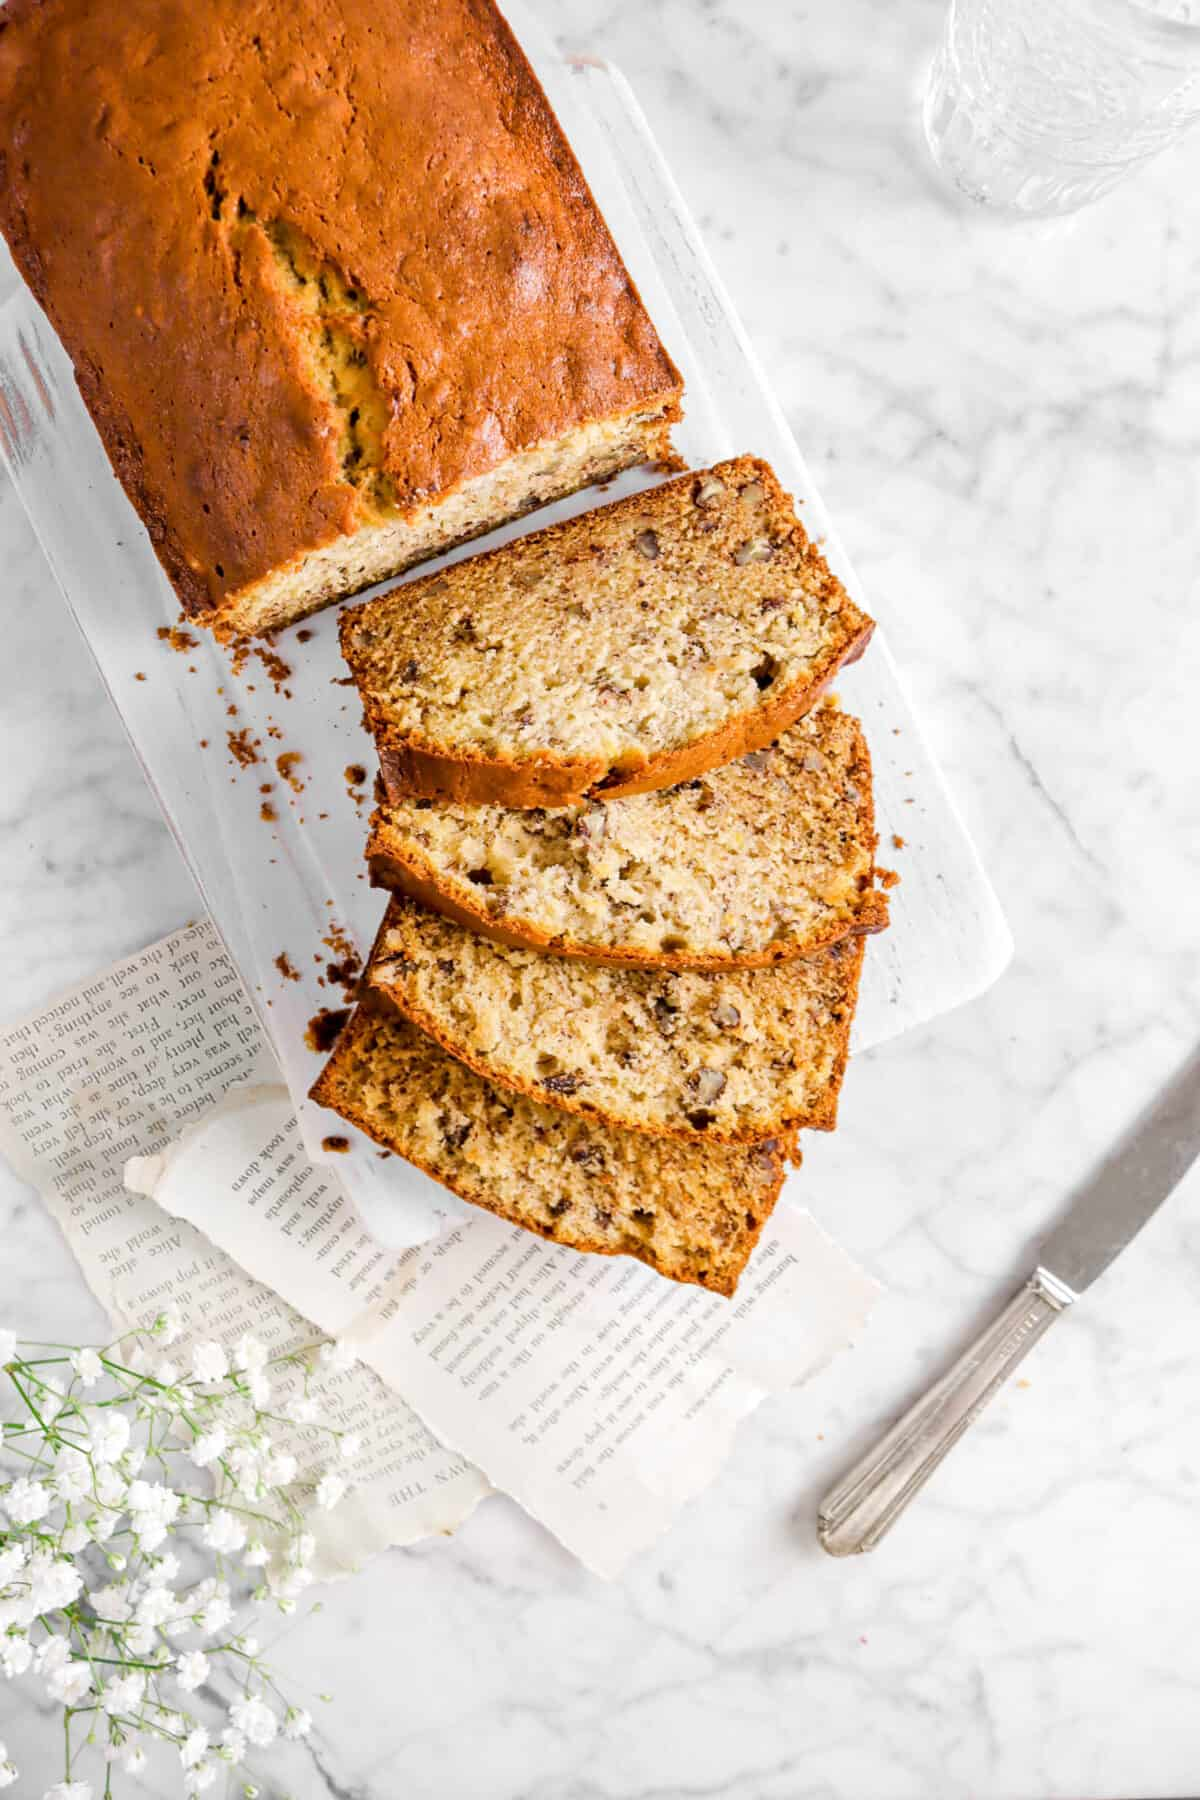 banana bread on white board with book pages and flowers